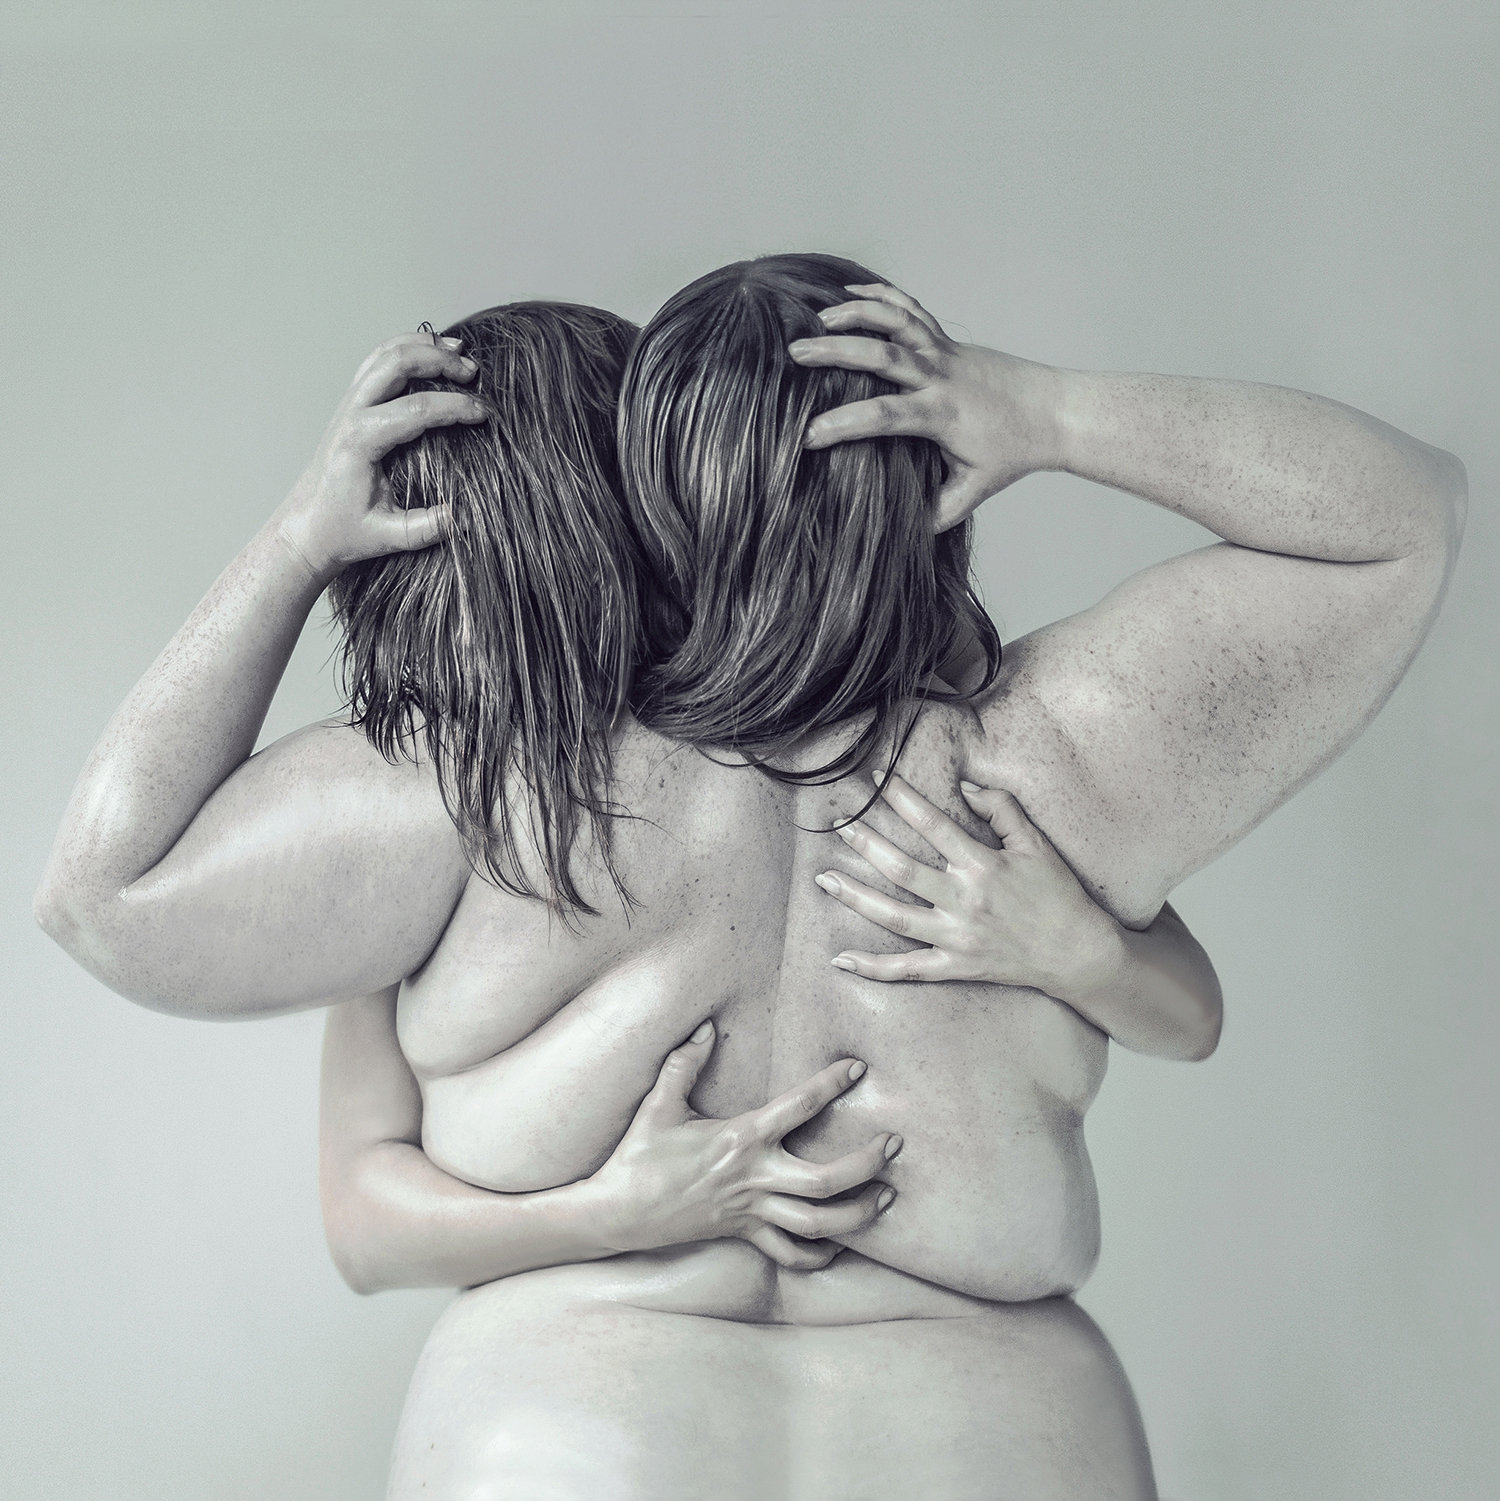 plus sized women hugging and grabbing hair, by evelyn bencicova, close series